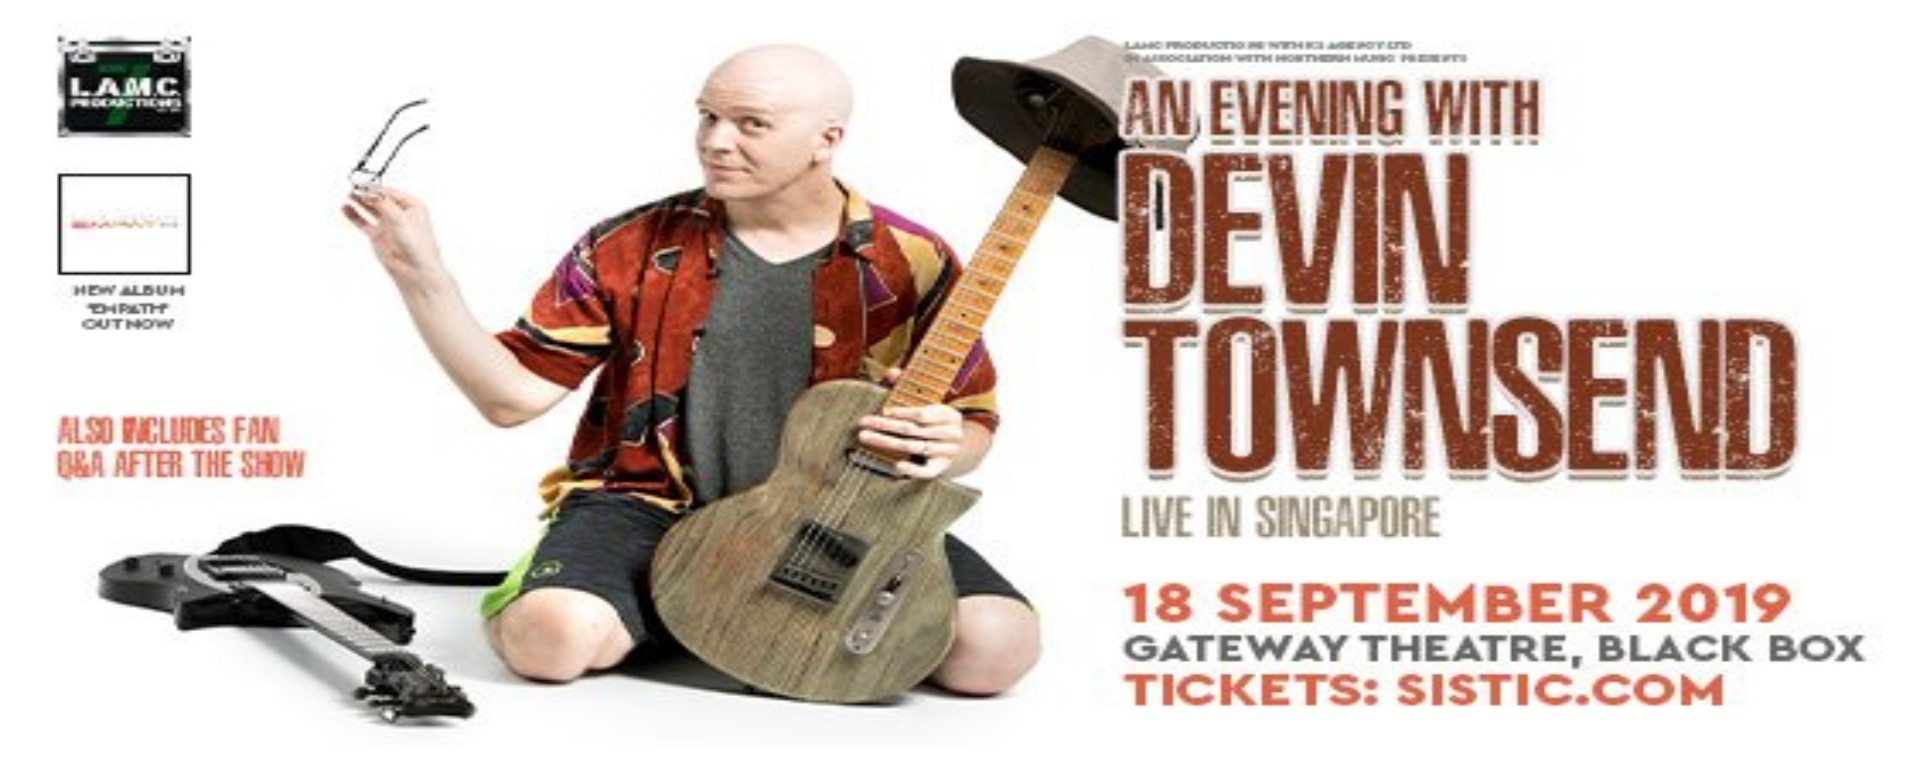 An Evening with Devin Townsend - Live in Singapore